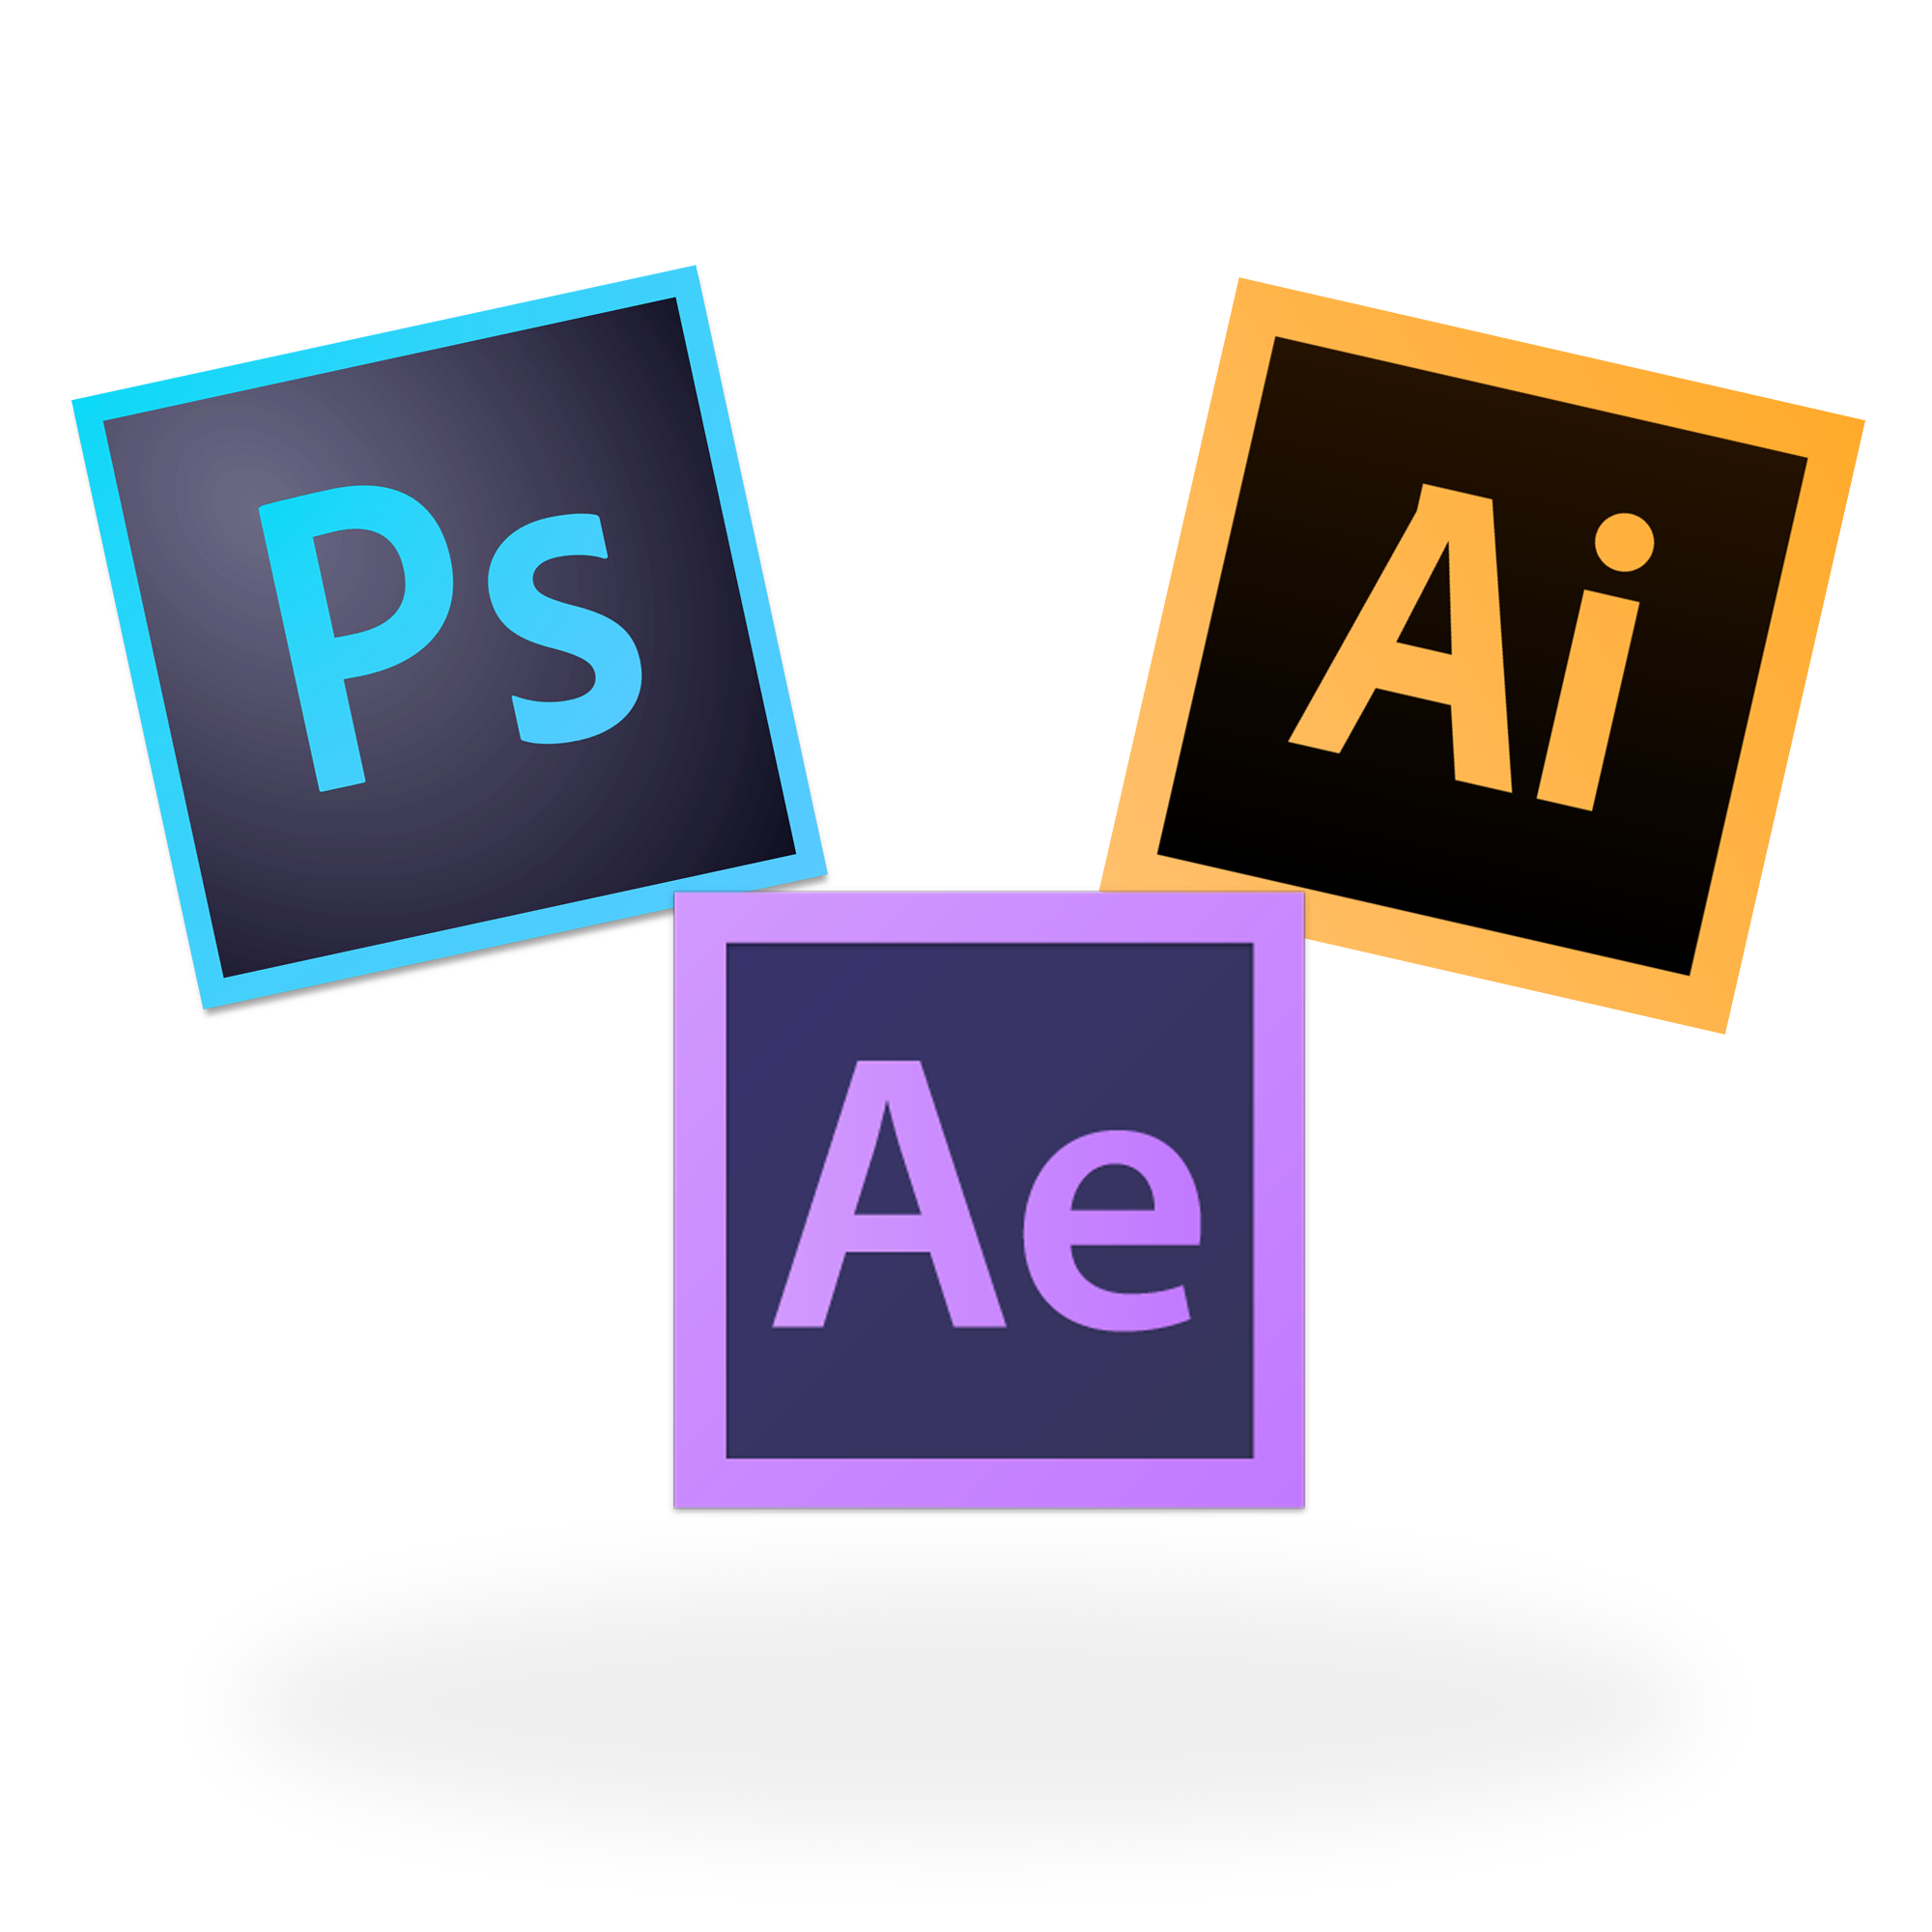 https://e-serial.fr/wp-content/uploads/2020/08/adobe_icones-copie.png